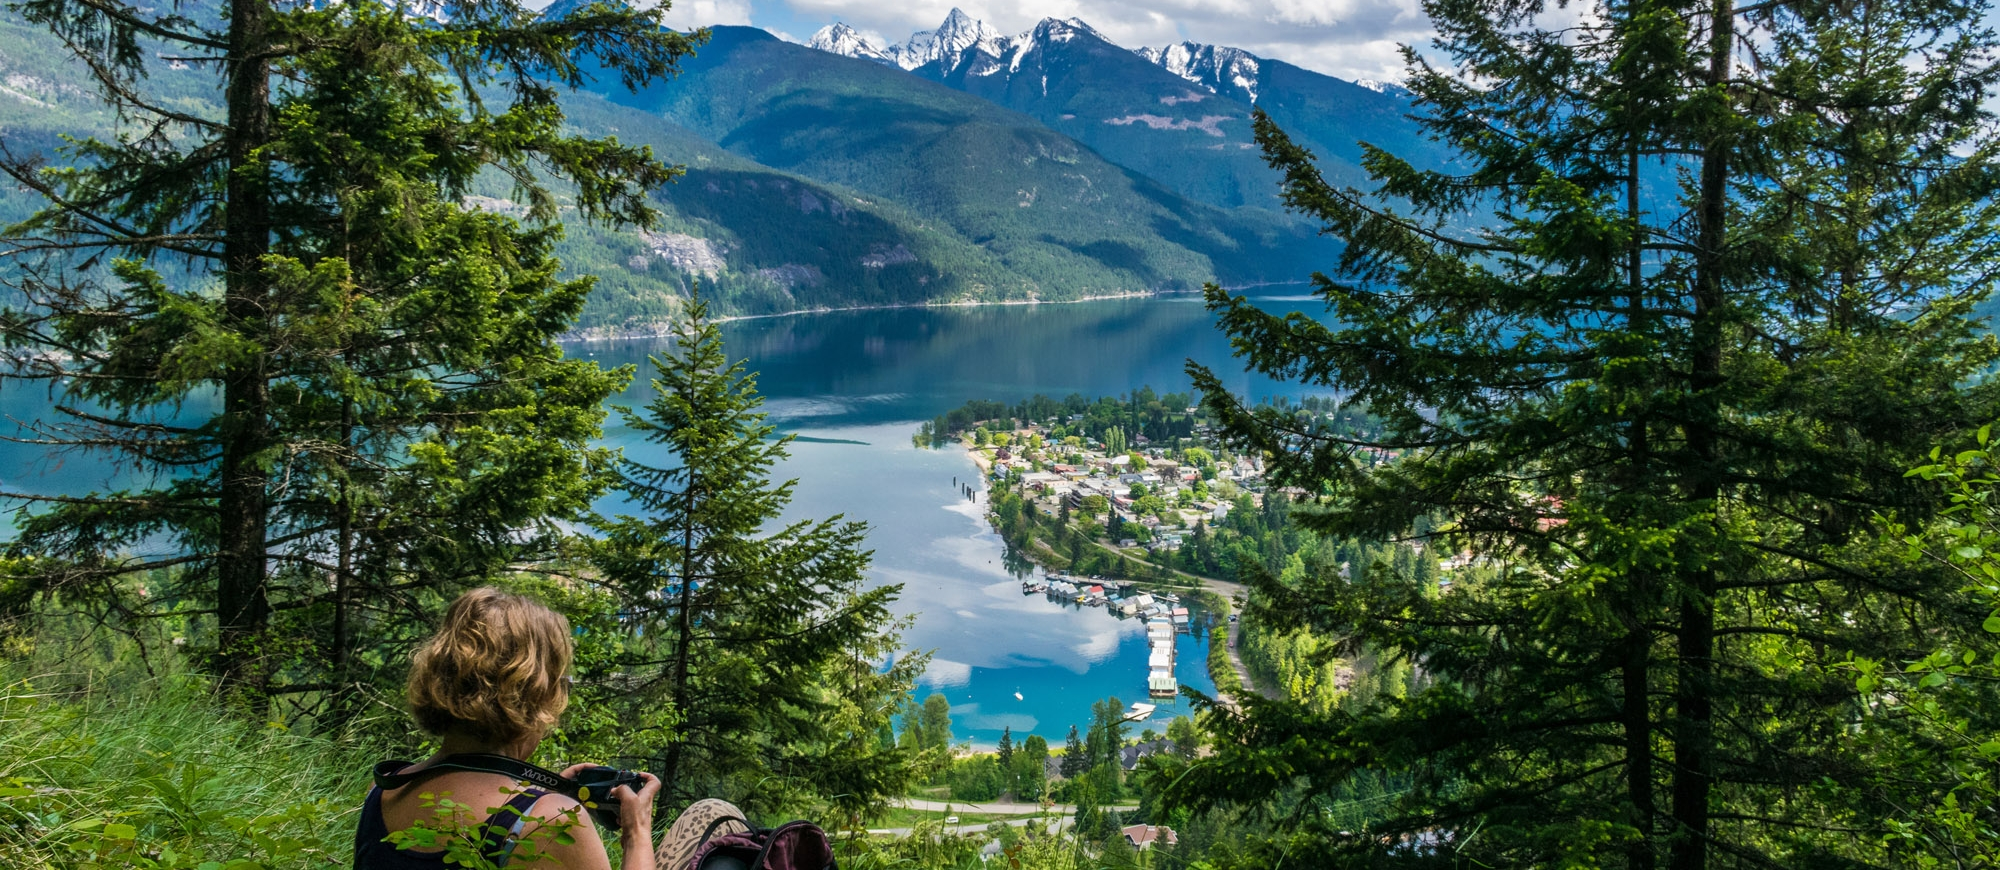 Woman with a camera sitting in the grass overlooking Kaslo, BC and Kootenay Lake